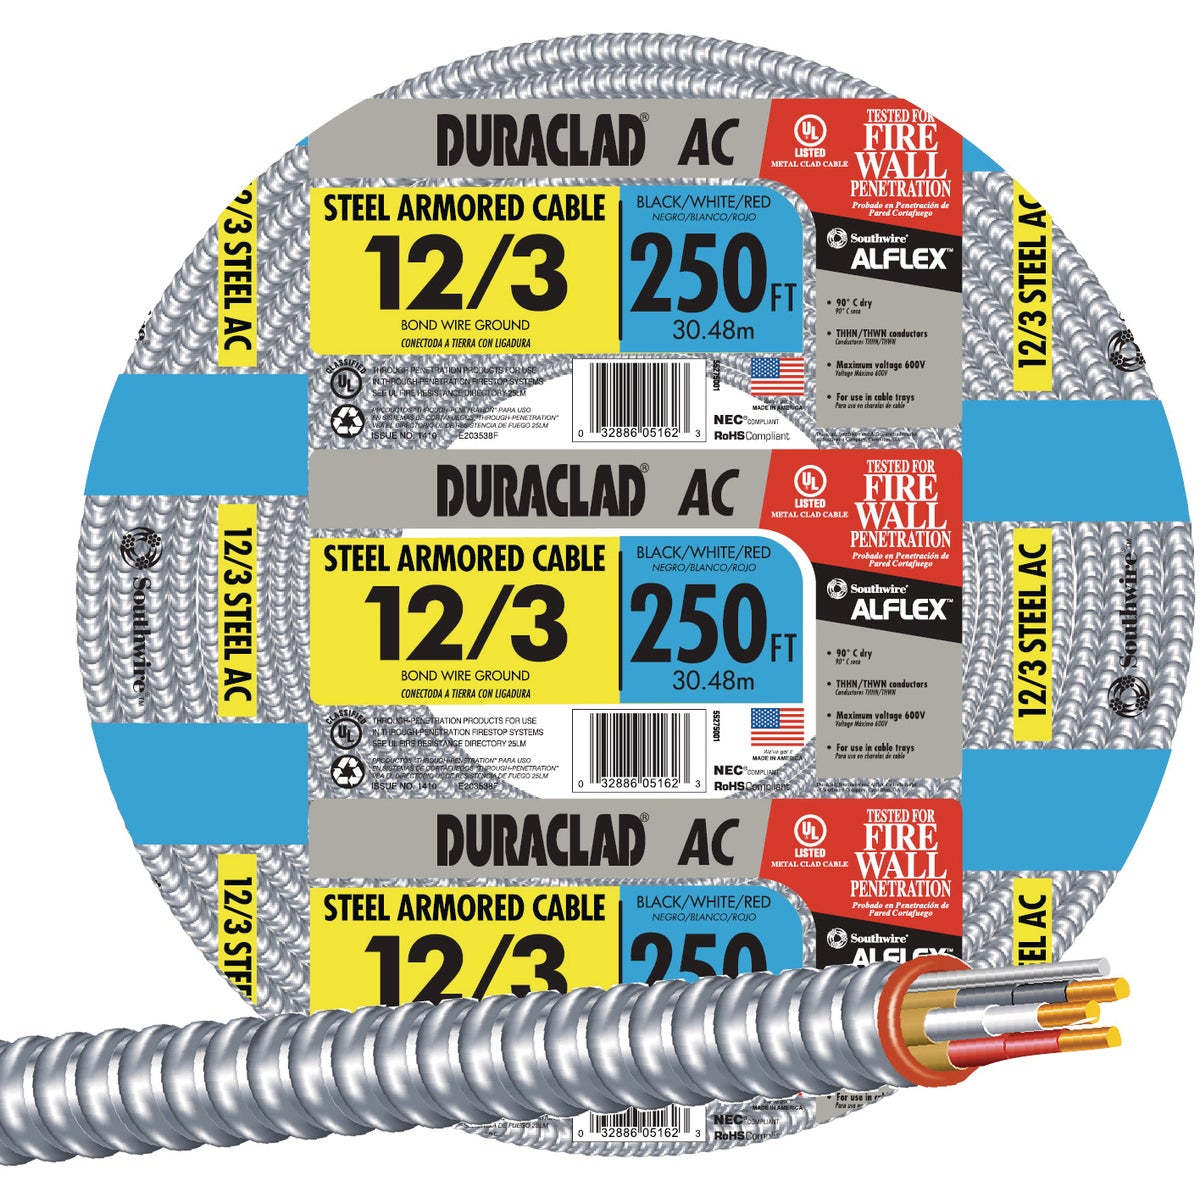 250' 12/3 STL ARMR CABLE - 55275001 by Southwire Company